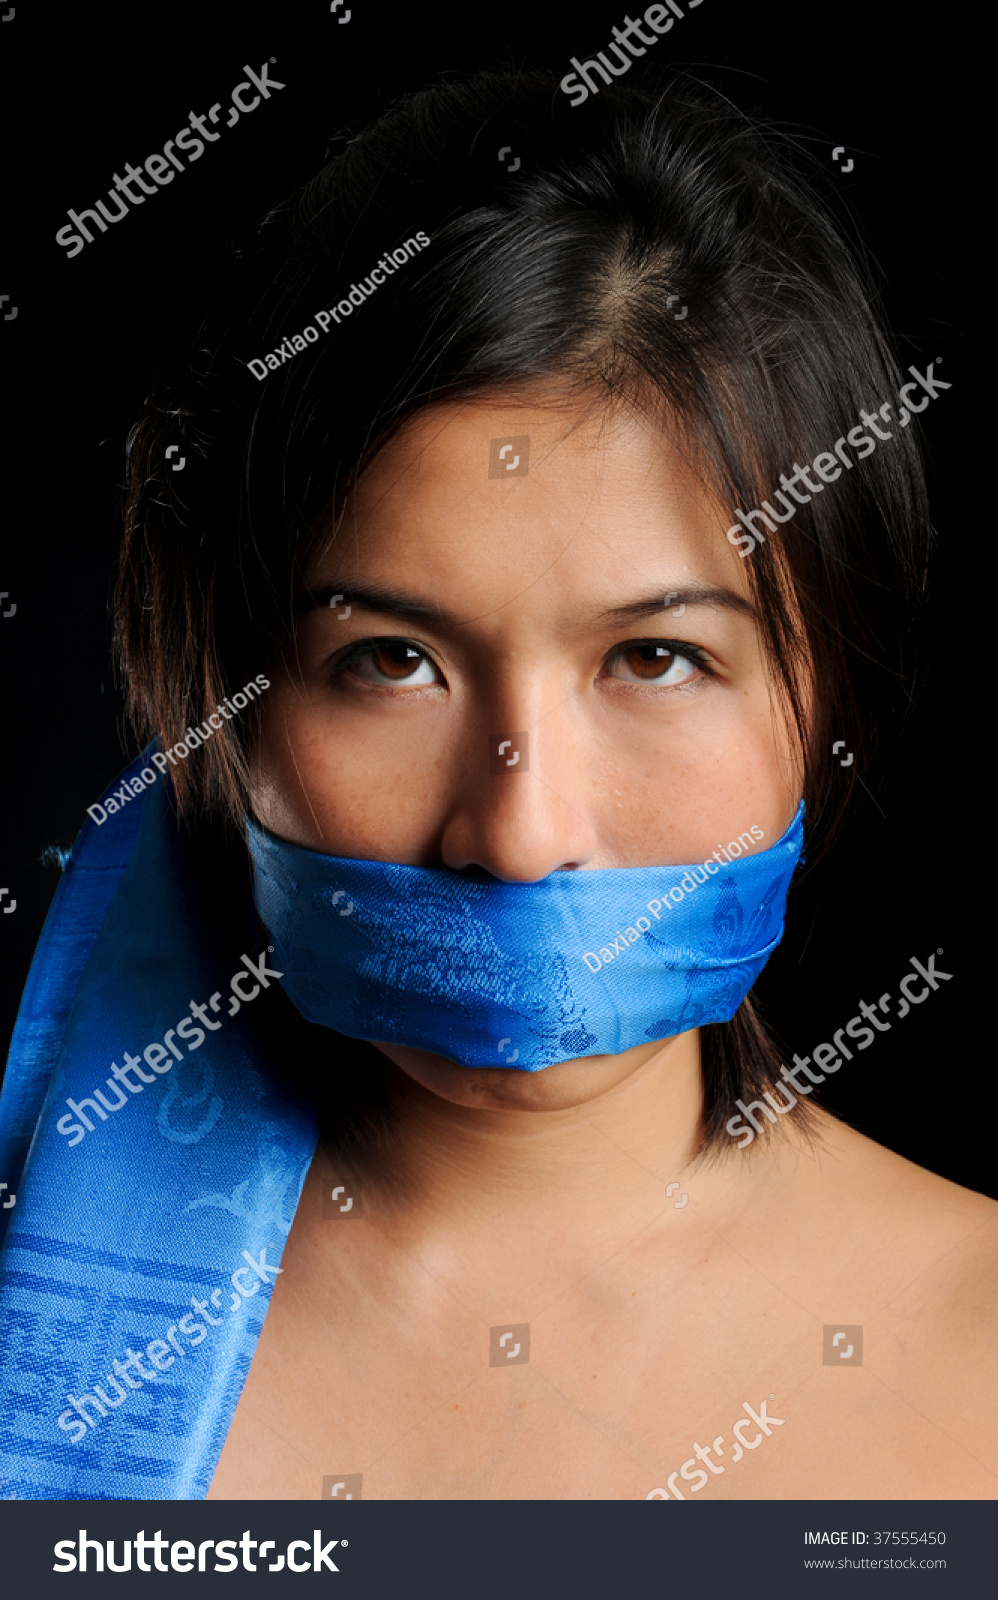 Gag scarf Interested In